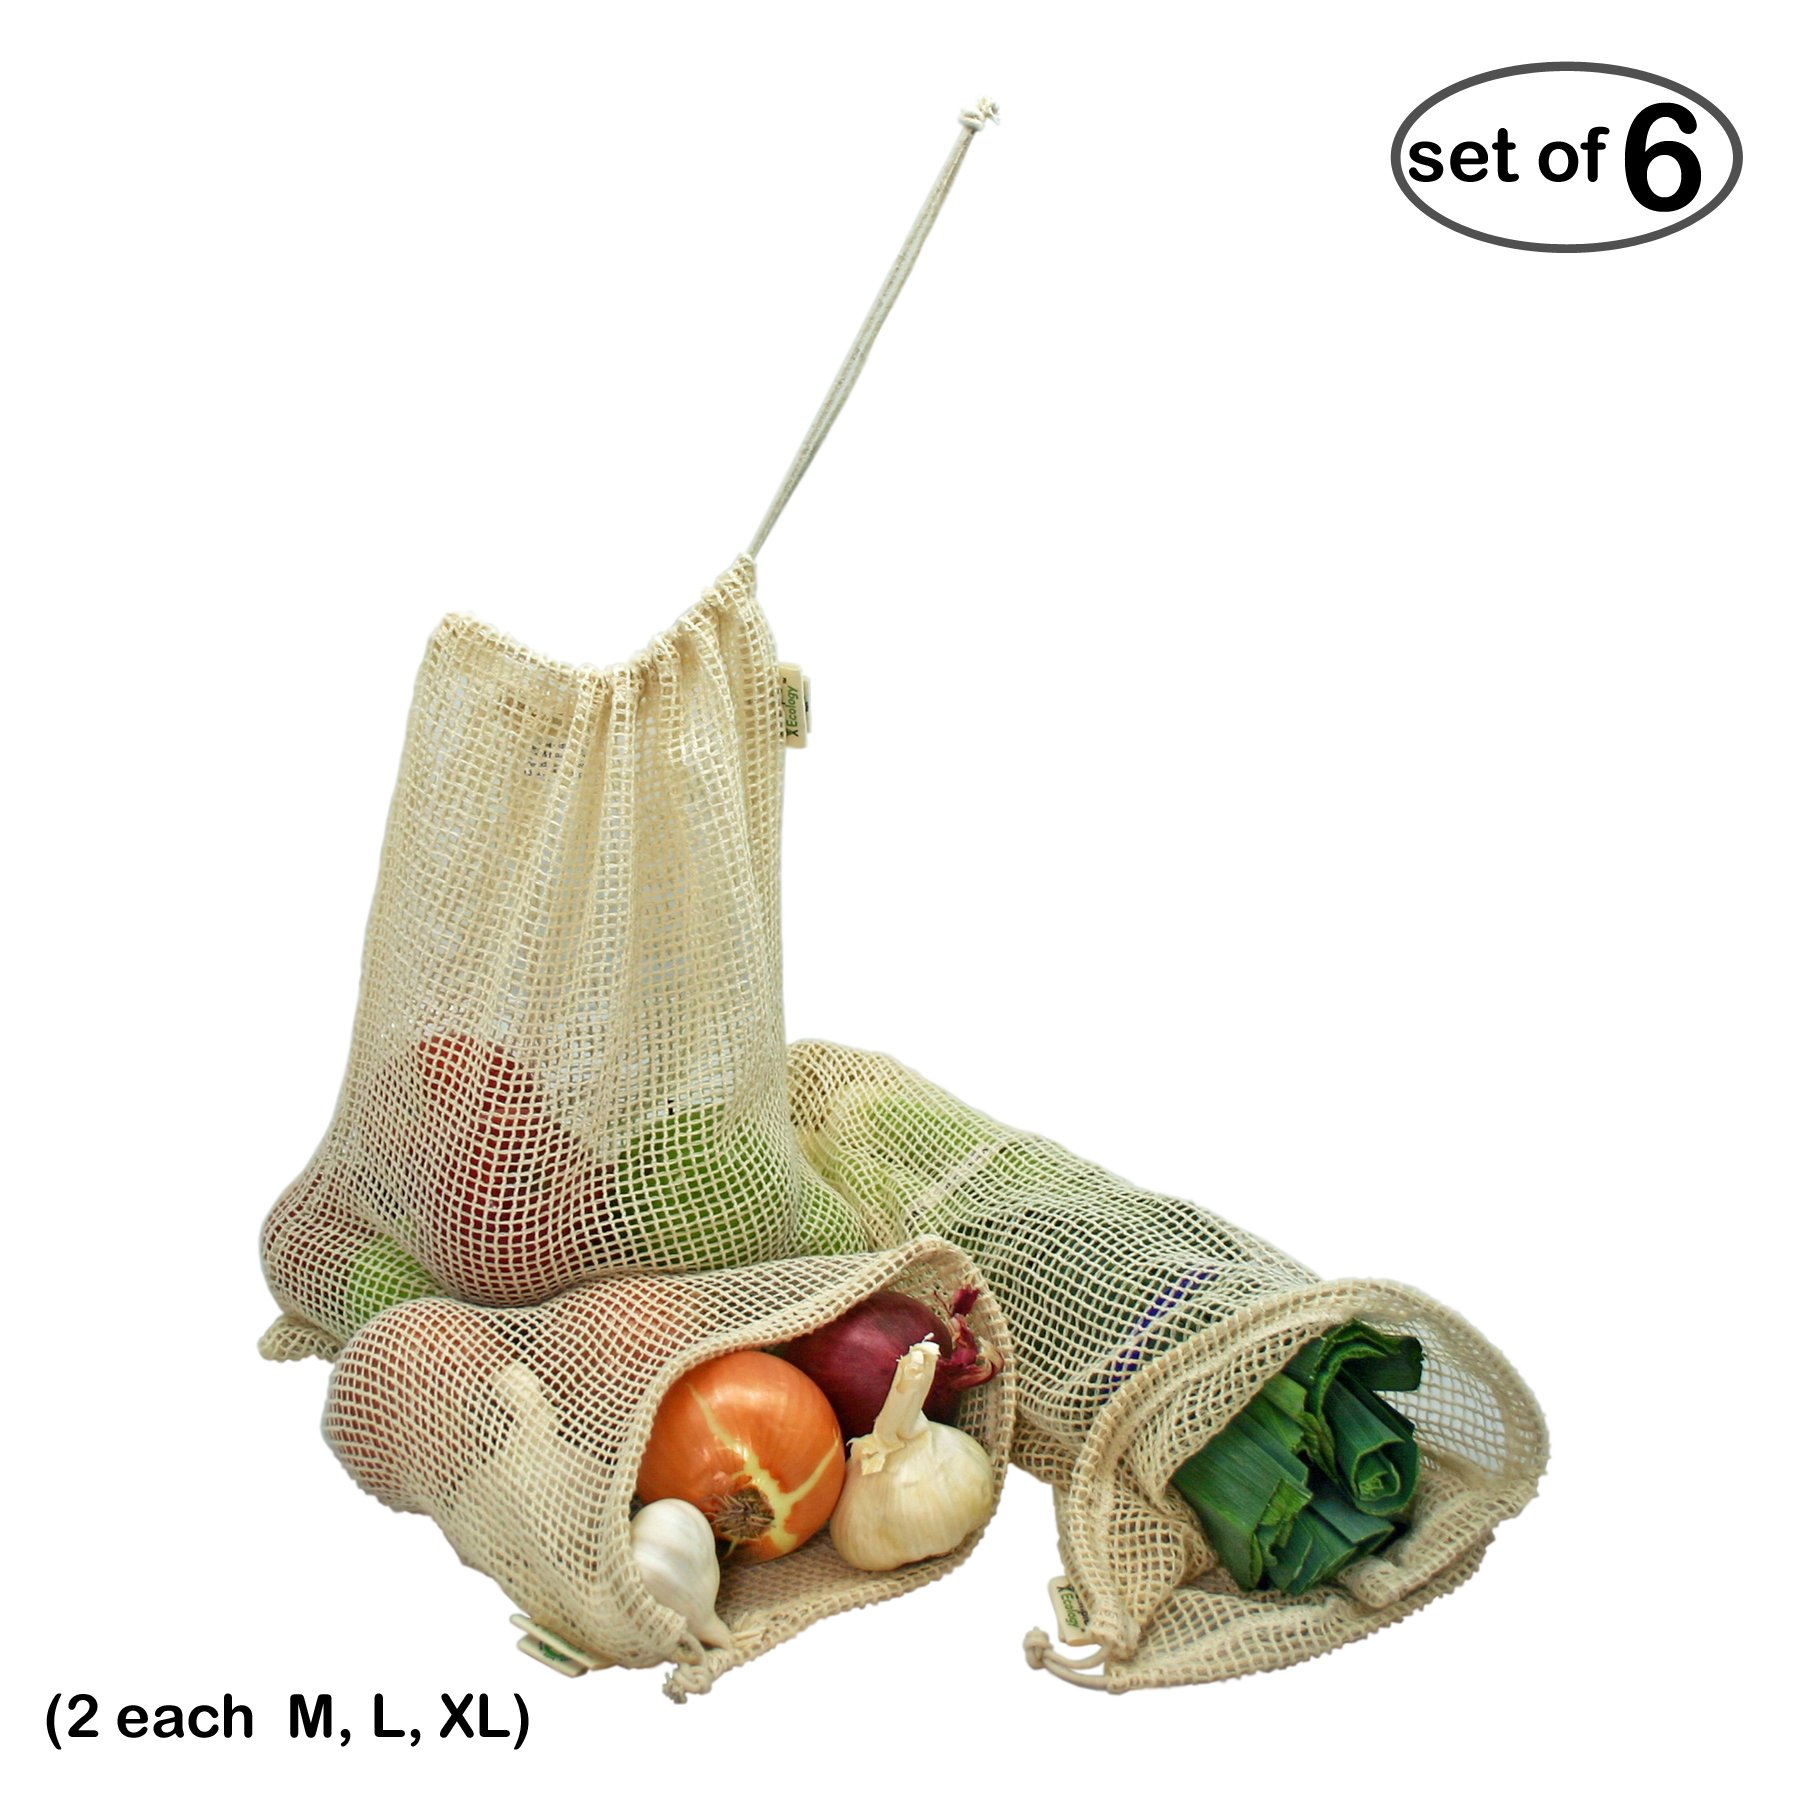 Simple Ecology Reusable Organic Cotton Mesh Grocery Shopping Produce Bags-Set of 6(2ea of M,L,XL)